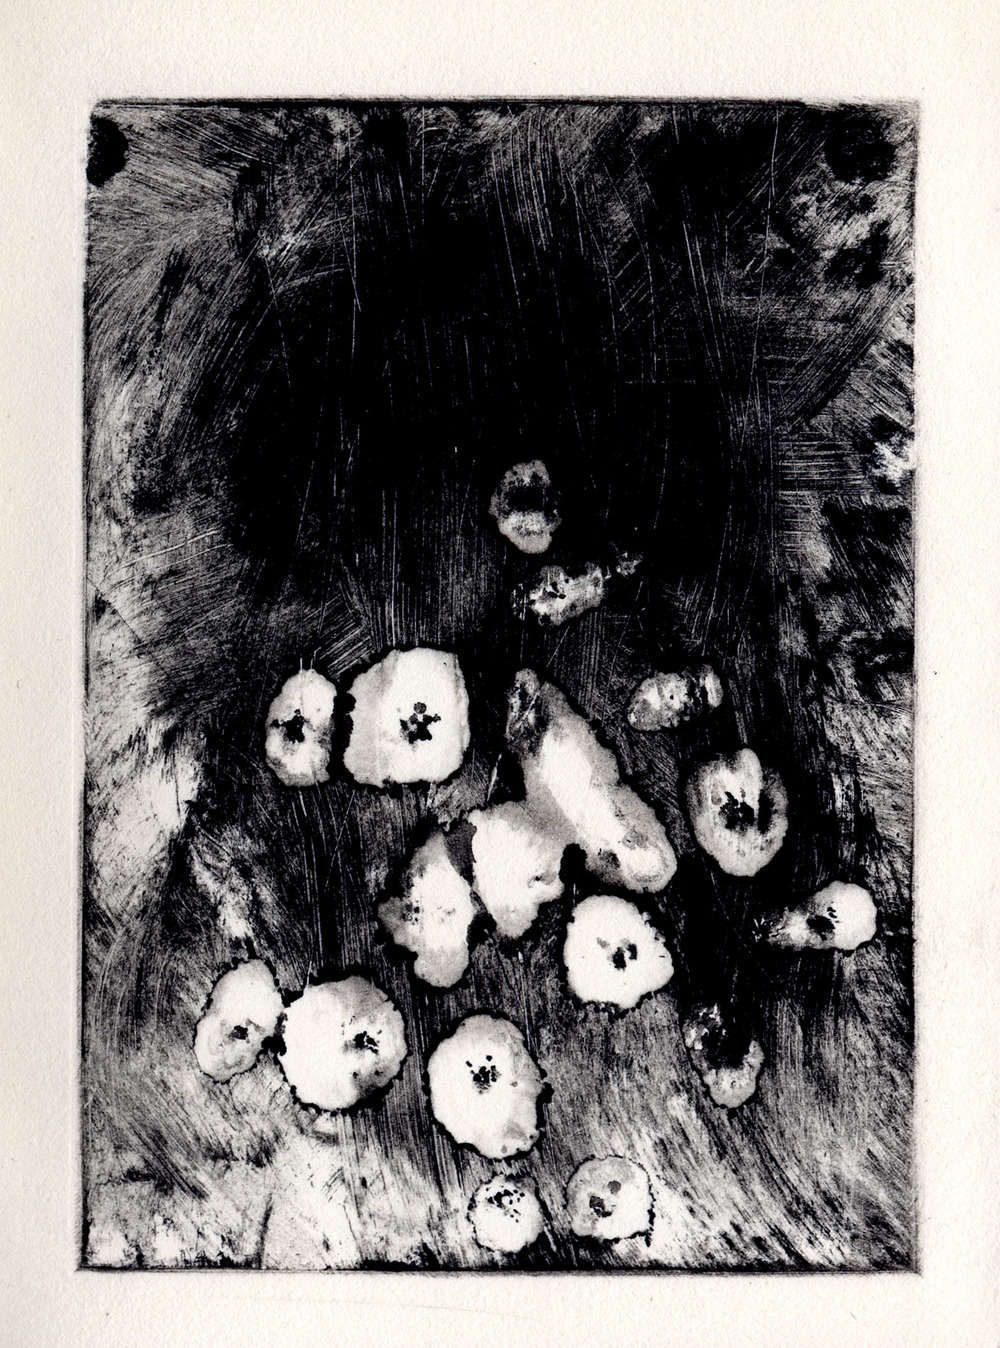 All the Little Live Things, page 4 monotype, etching ink on Rives BFK Lightweight